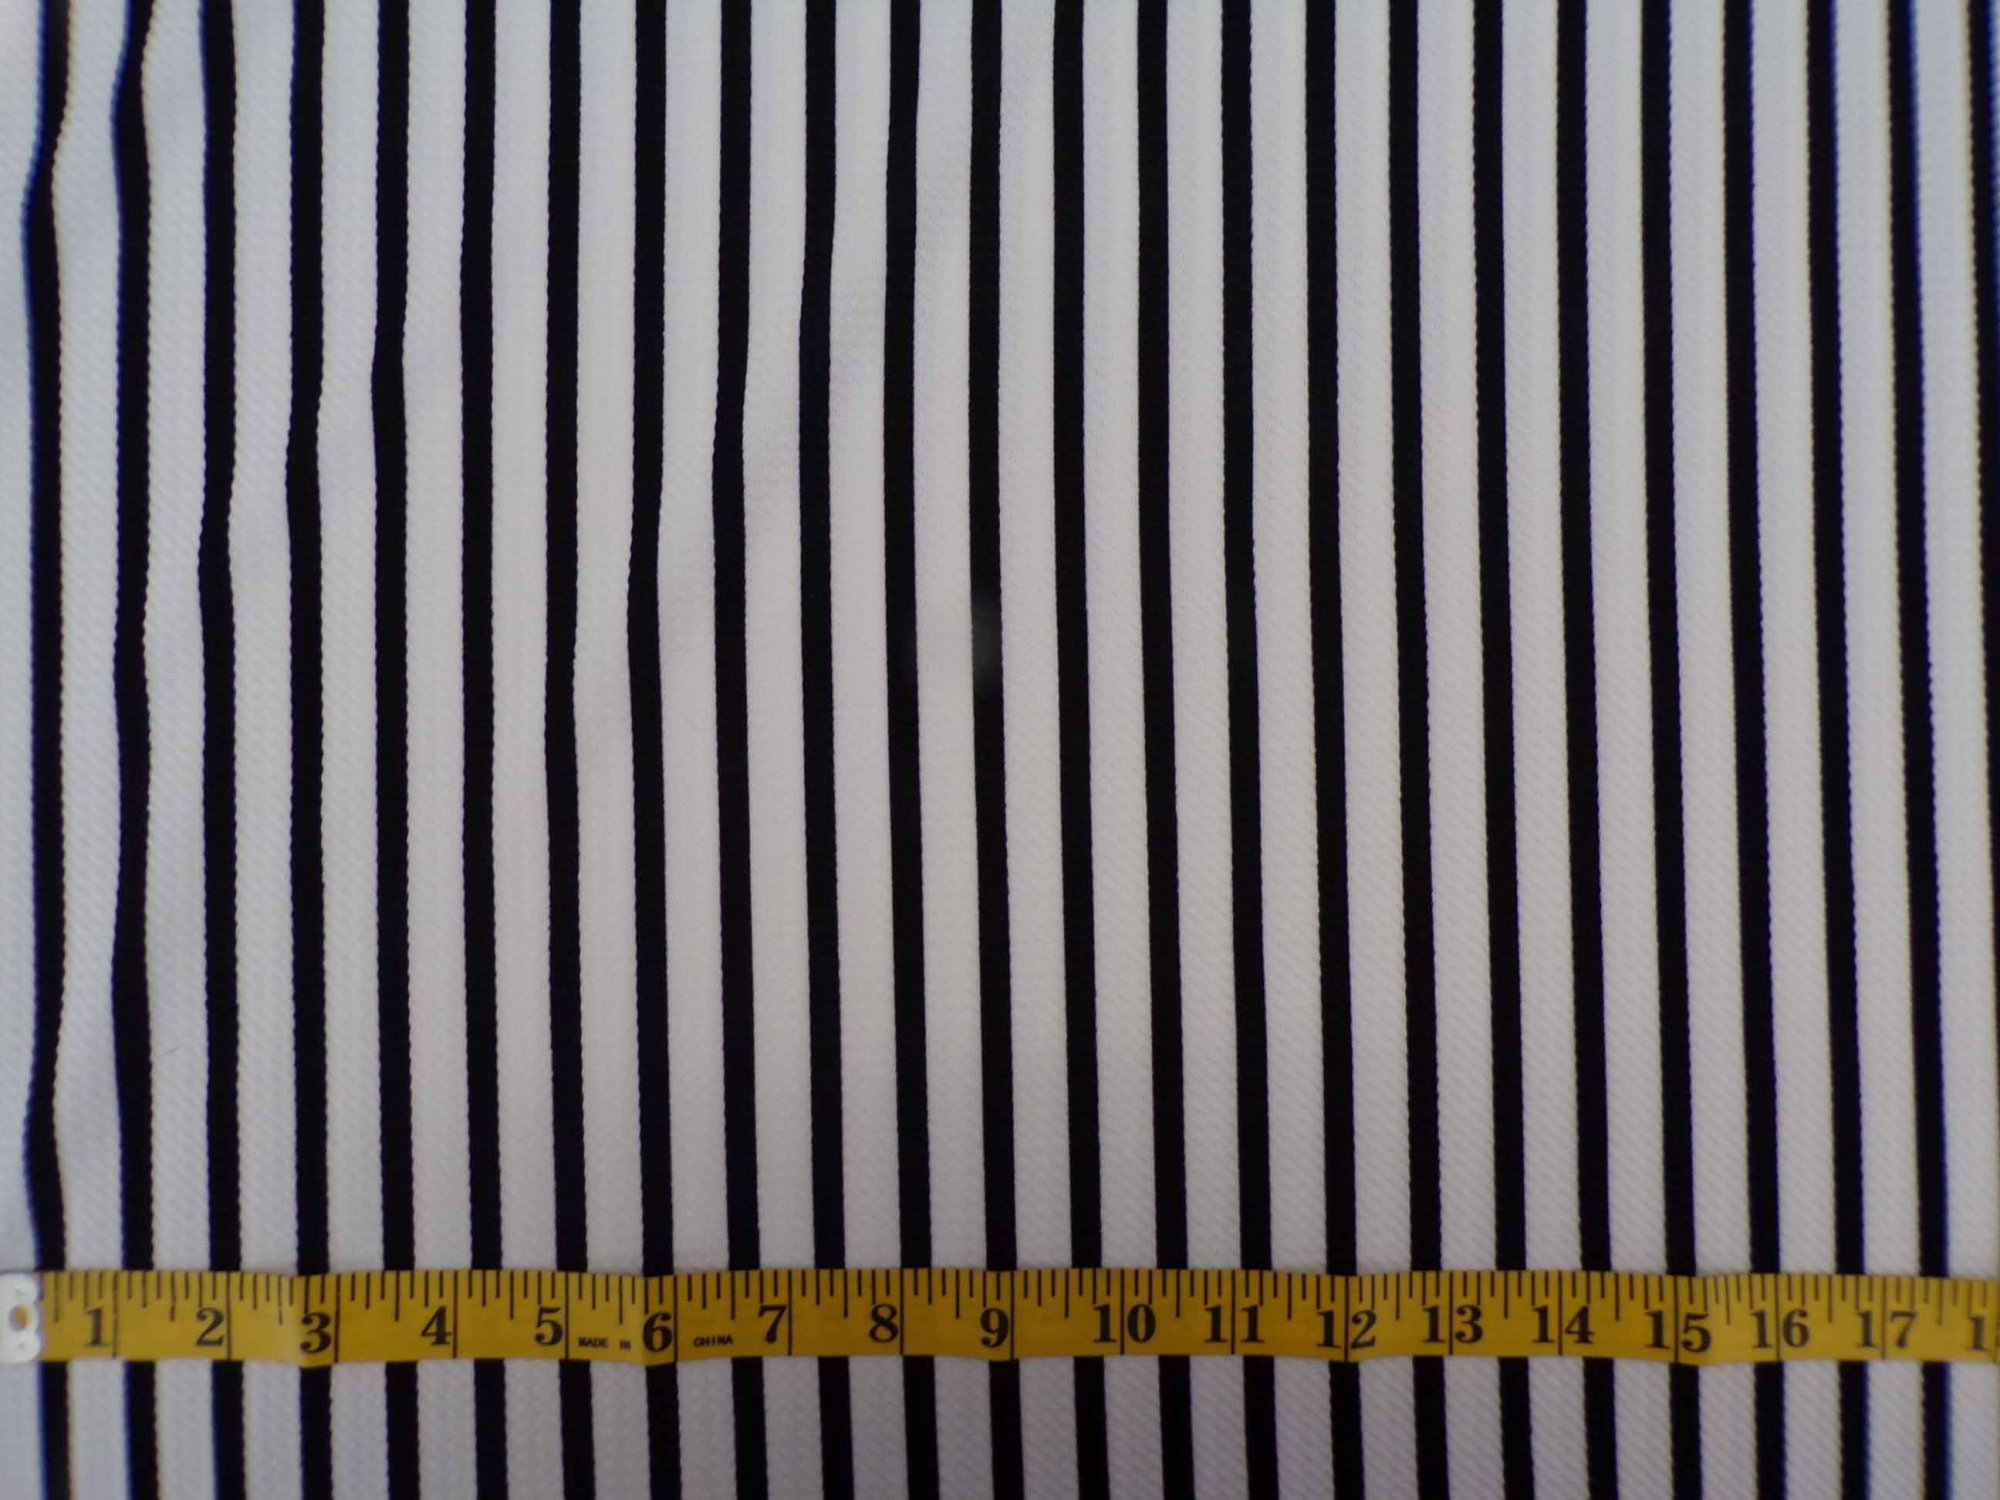 Liverpool Knit - Vertical Black and White Stripes